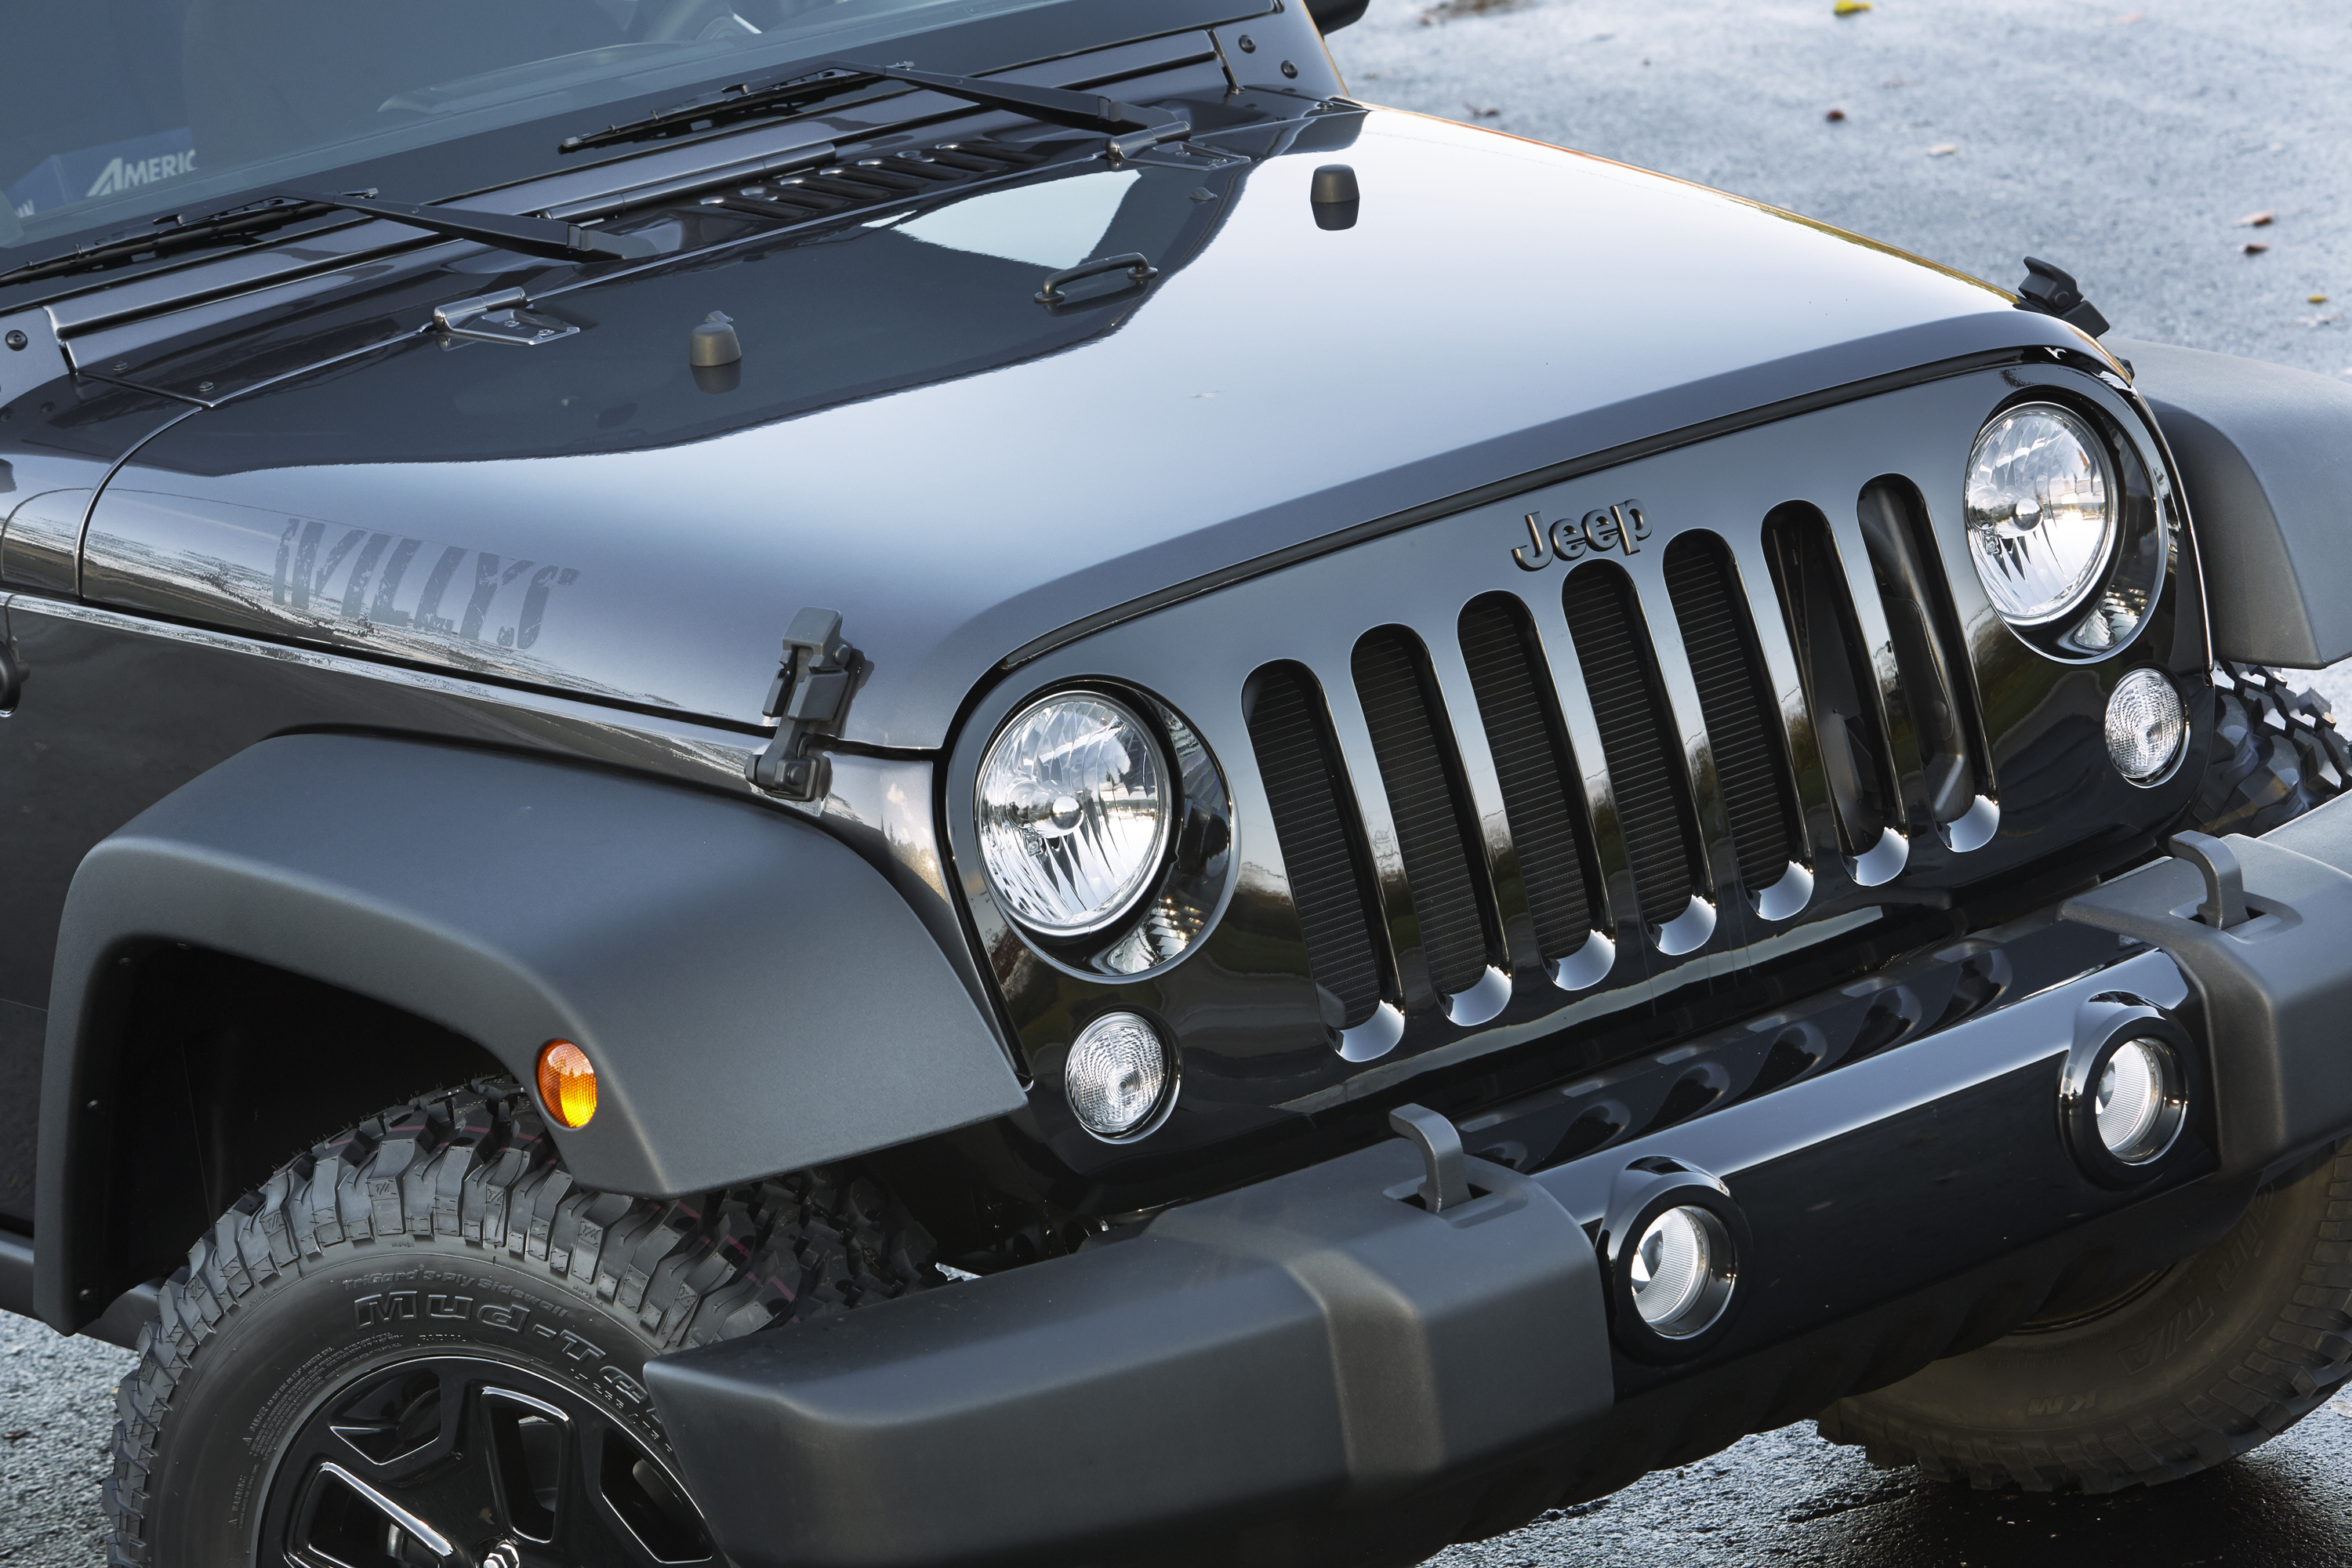 2014 Jeep Wrangler Rubicon >> 2014 Jeep Wrangler Willys Wheeler Edition - JPFreek ...